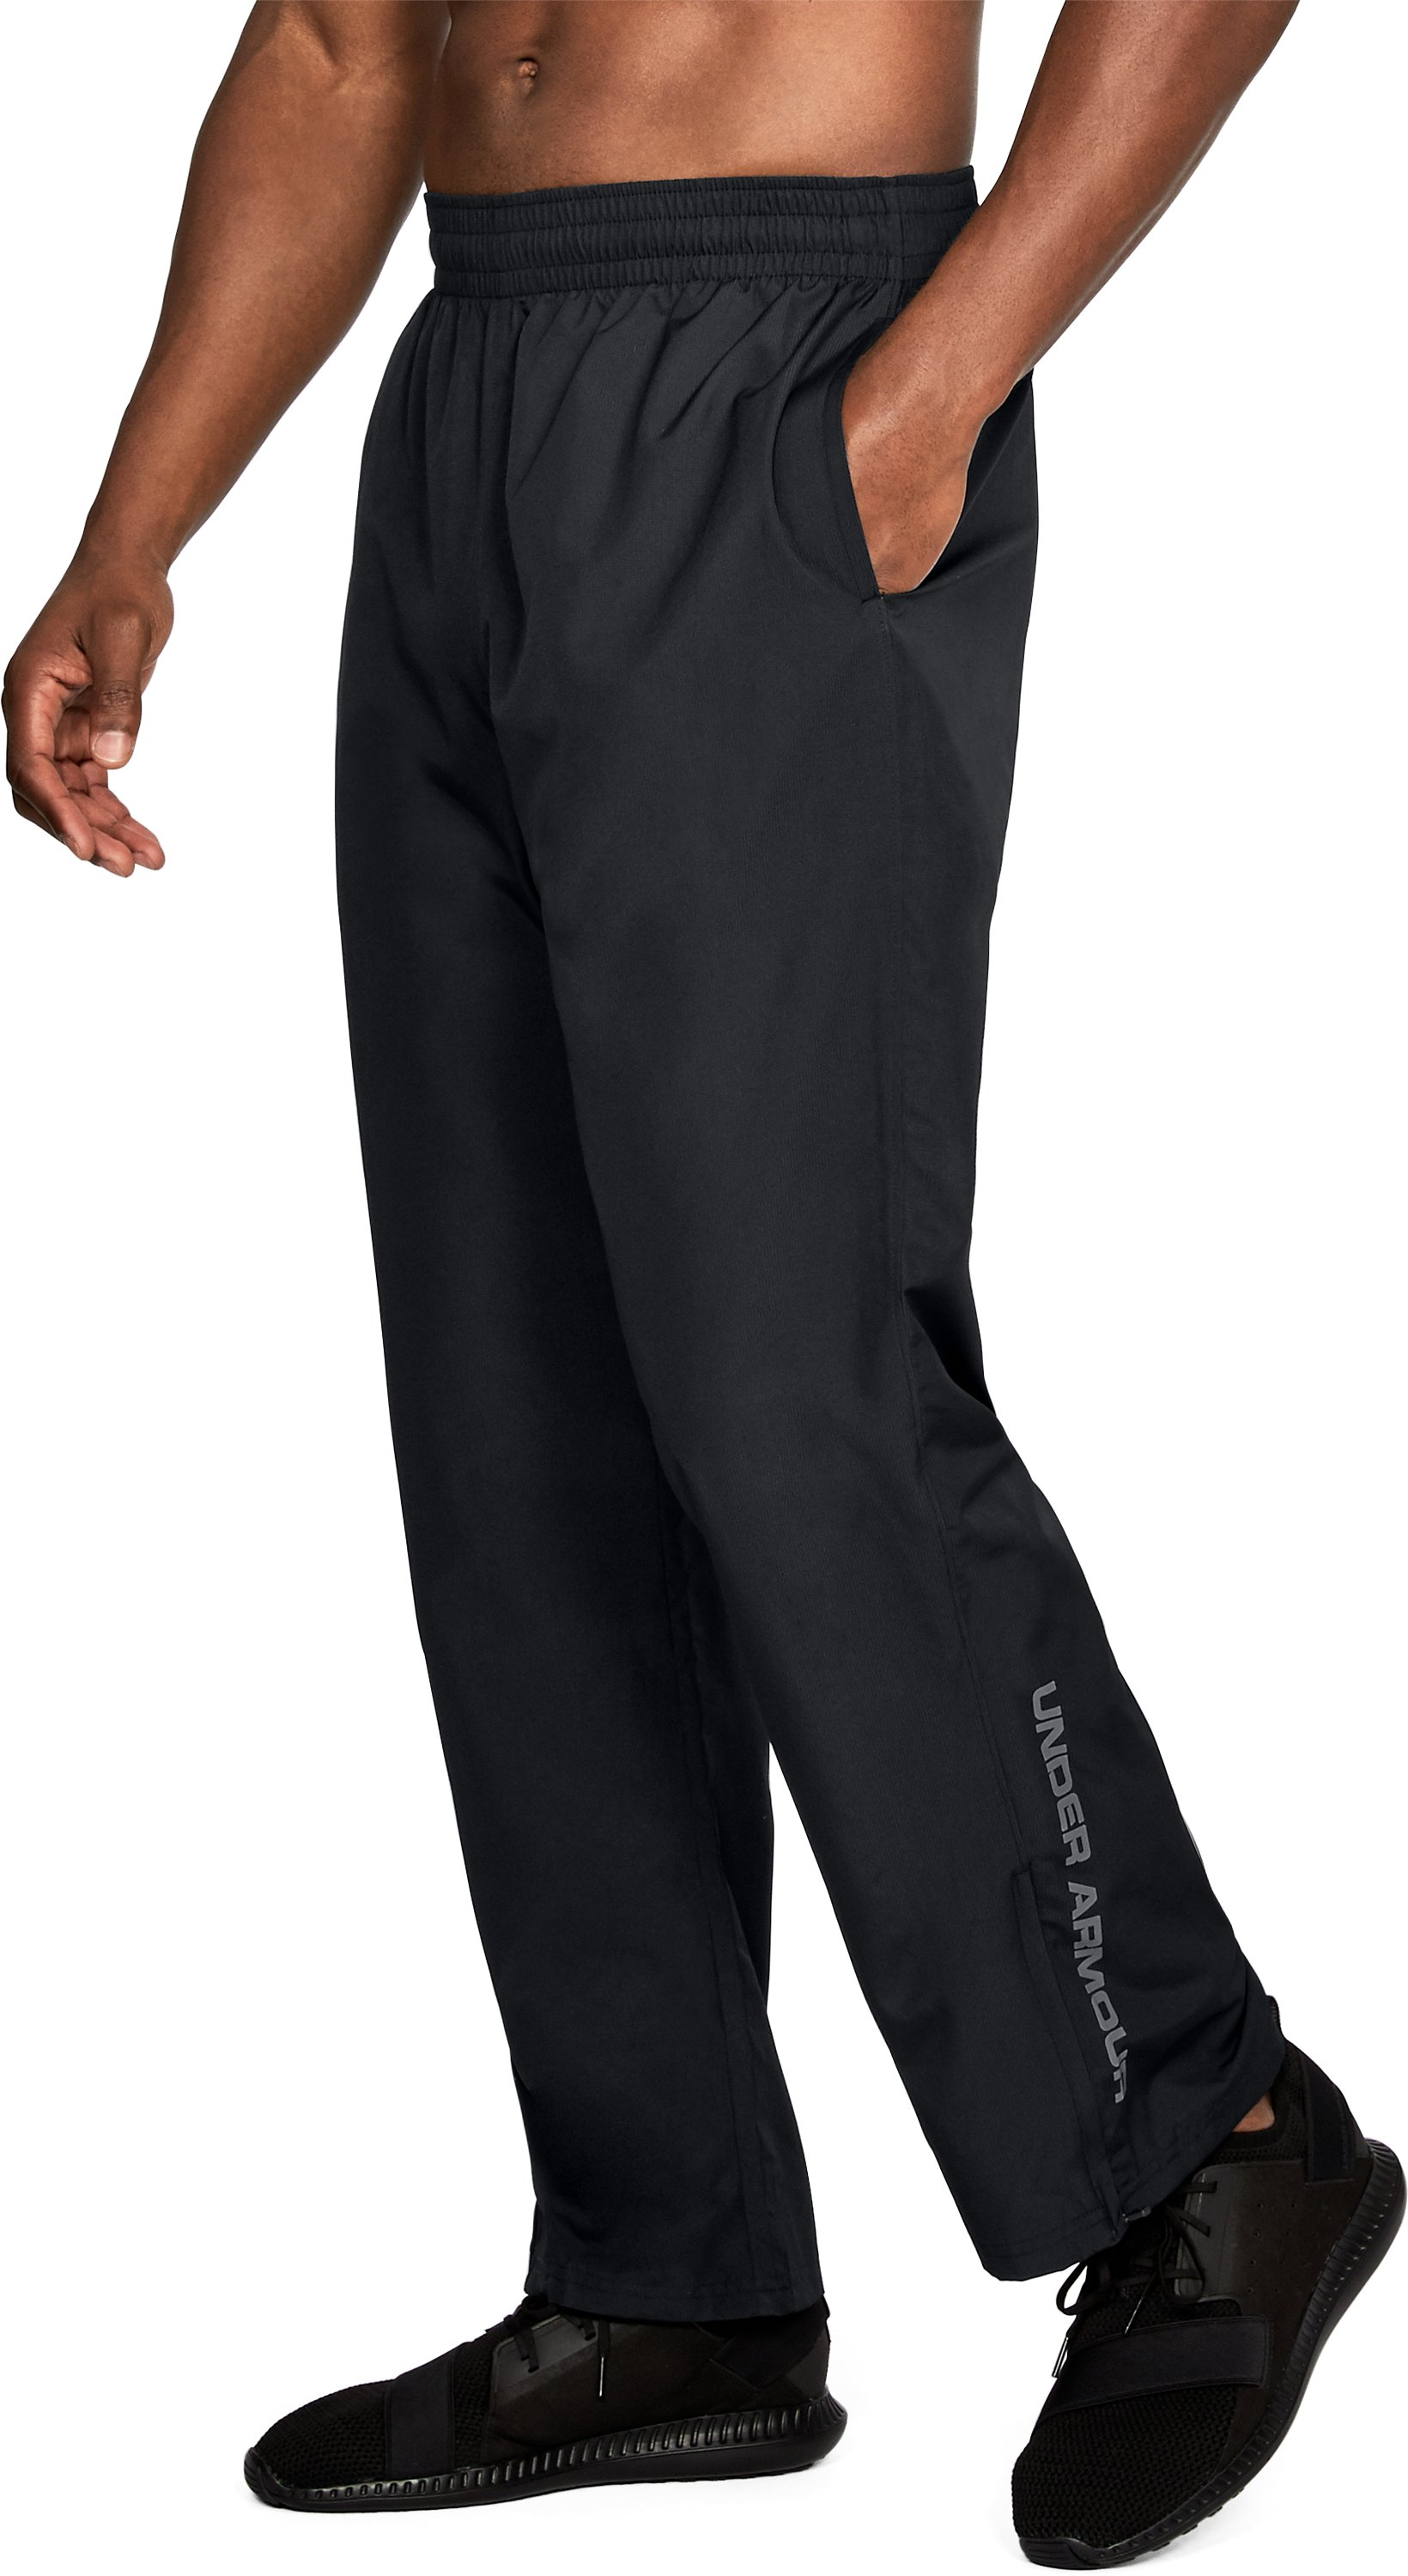 performance rain pants Men's UA Vital Warm-Up Pants Very durable....very nice fit...Nice pants